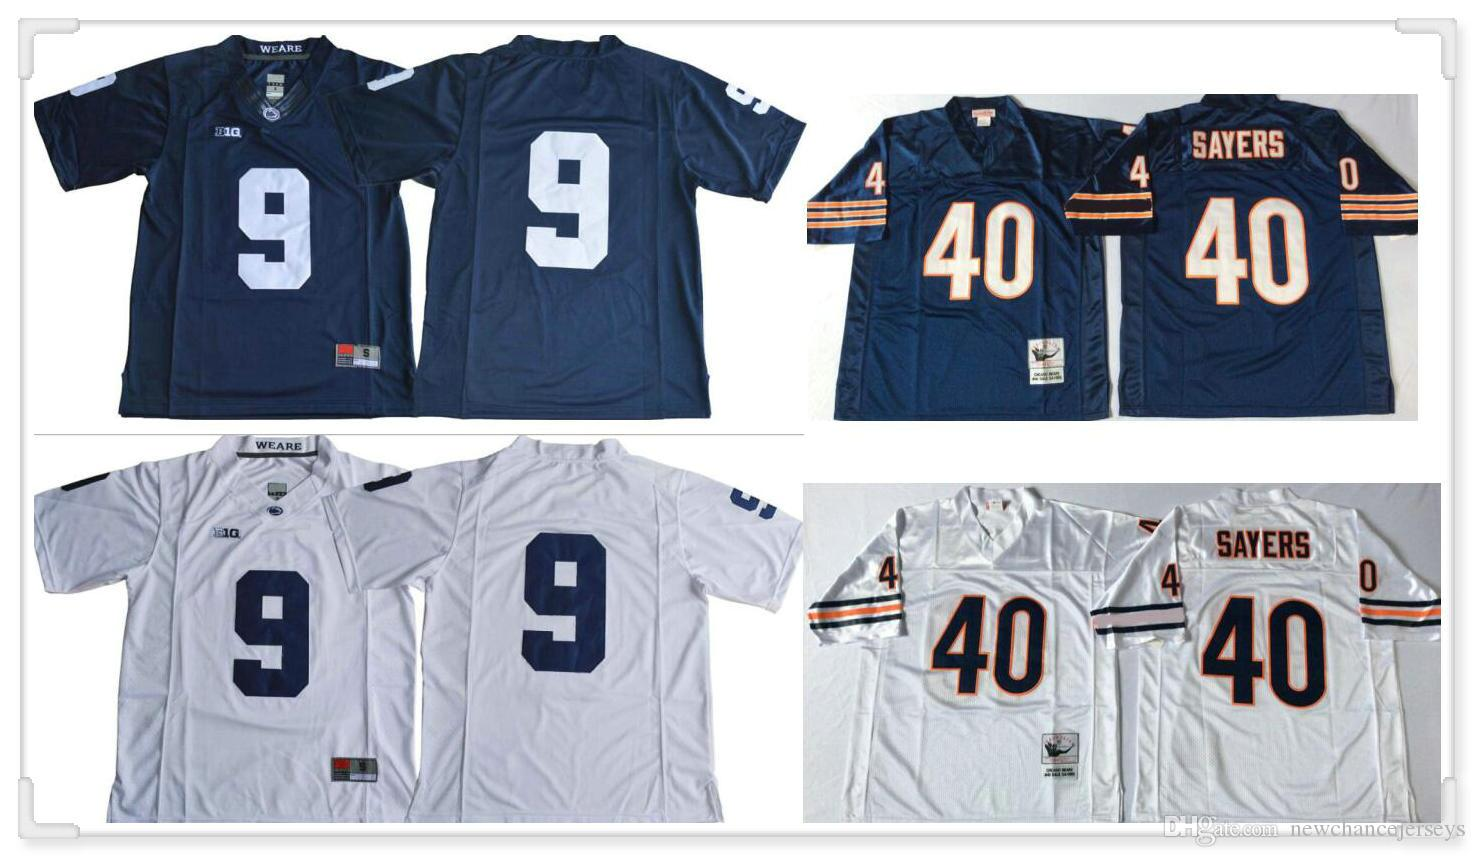 Mens College Penn State Nittany Lions #9 Trace McSorley 40 Gale Sayers 95 quinnen williams Vintage American Football Uniforms Sports Jerseys